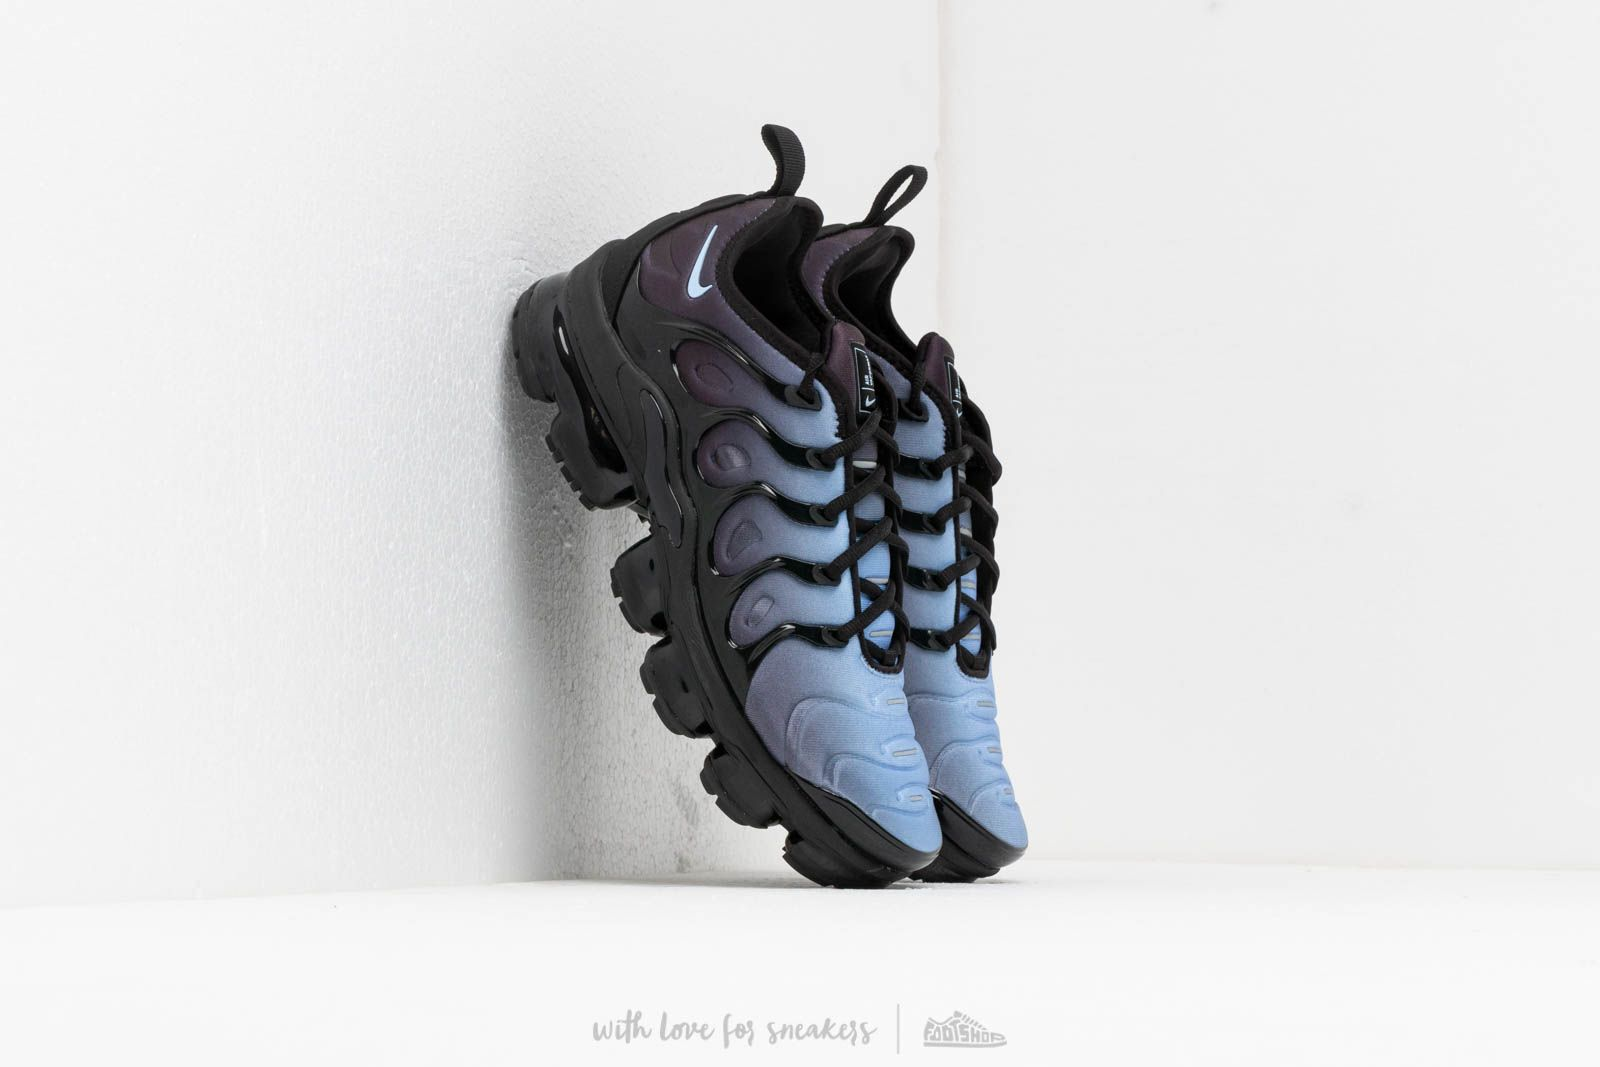 eb92479a890 Nike Air Vapormax Plus Black  Aluminum at a great price 198 € buy at  Footshop